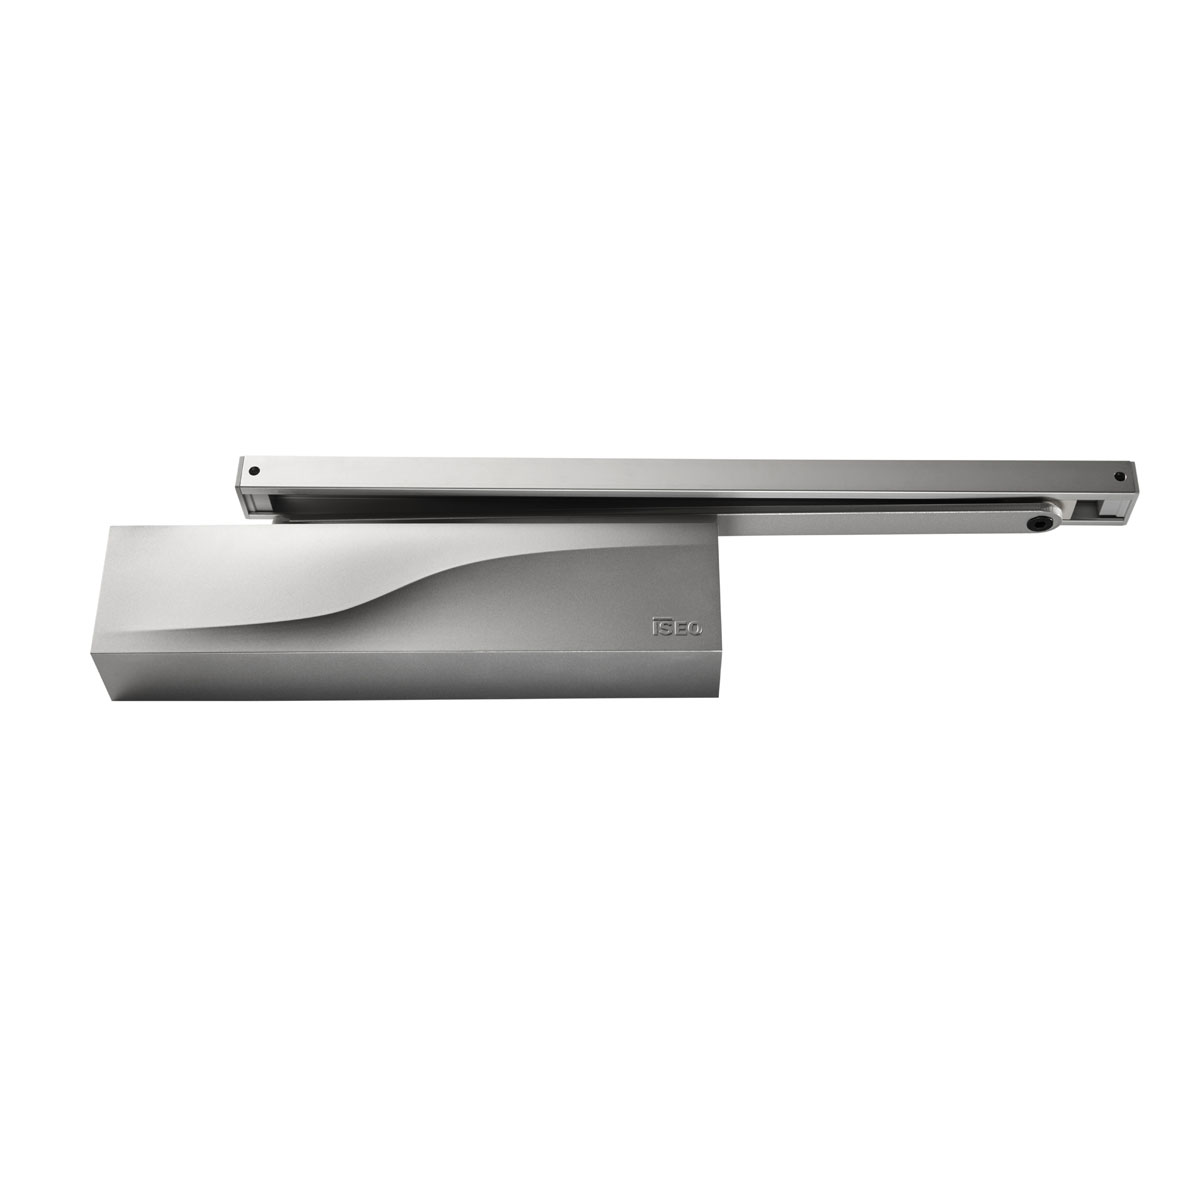 GDR Iseo IS115 Silver Door Closer